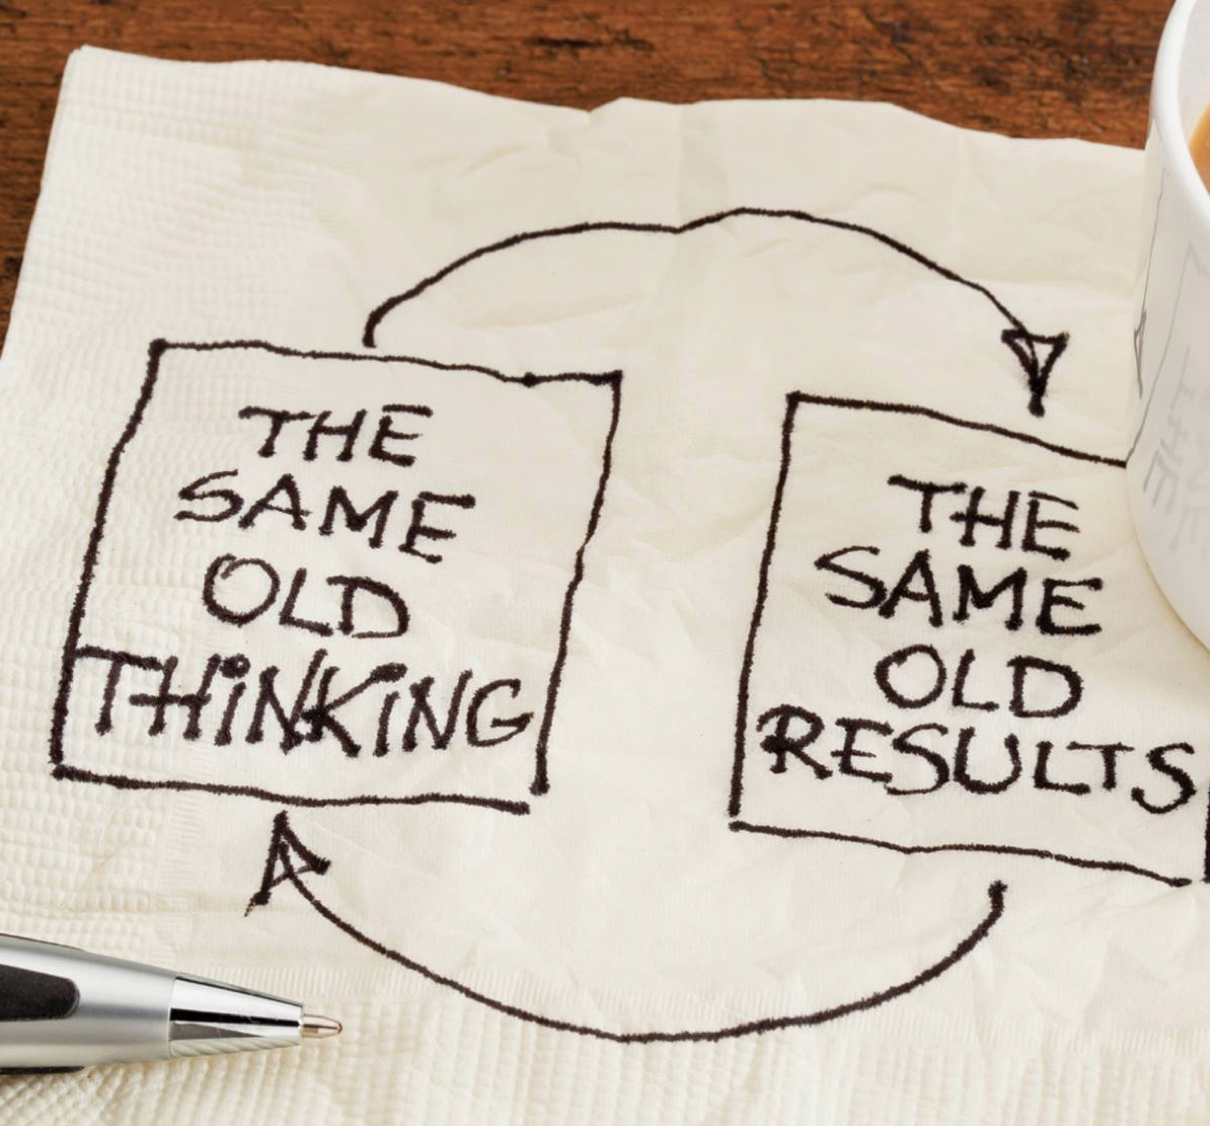 Same old thinking will result in the same old results.